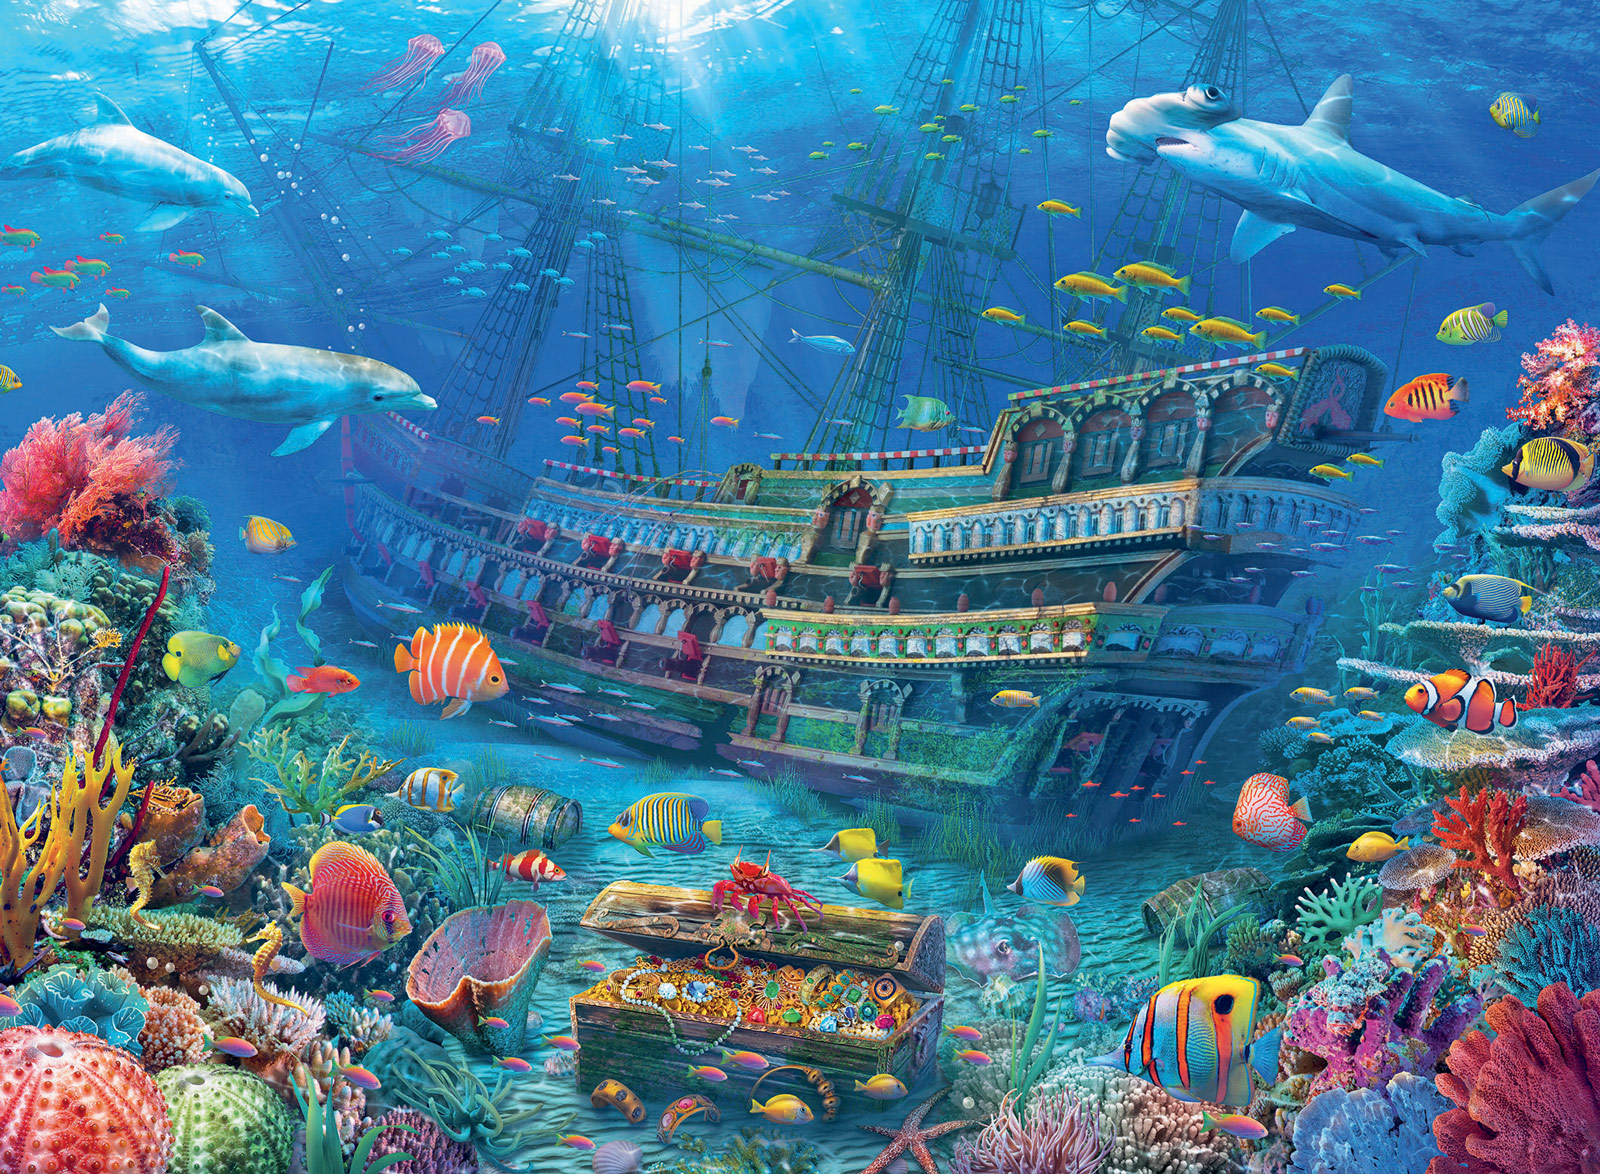 Underwater Discovery Under The Sea Jigsaw Puzzle